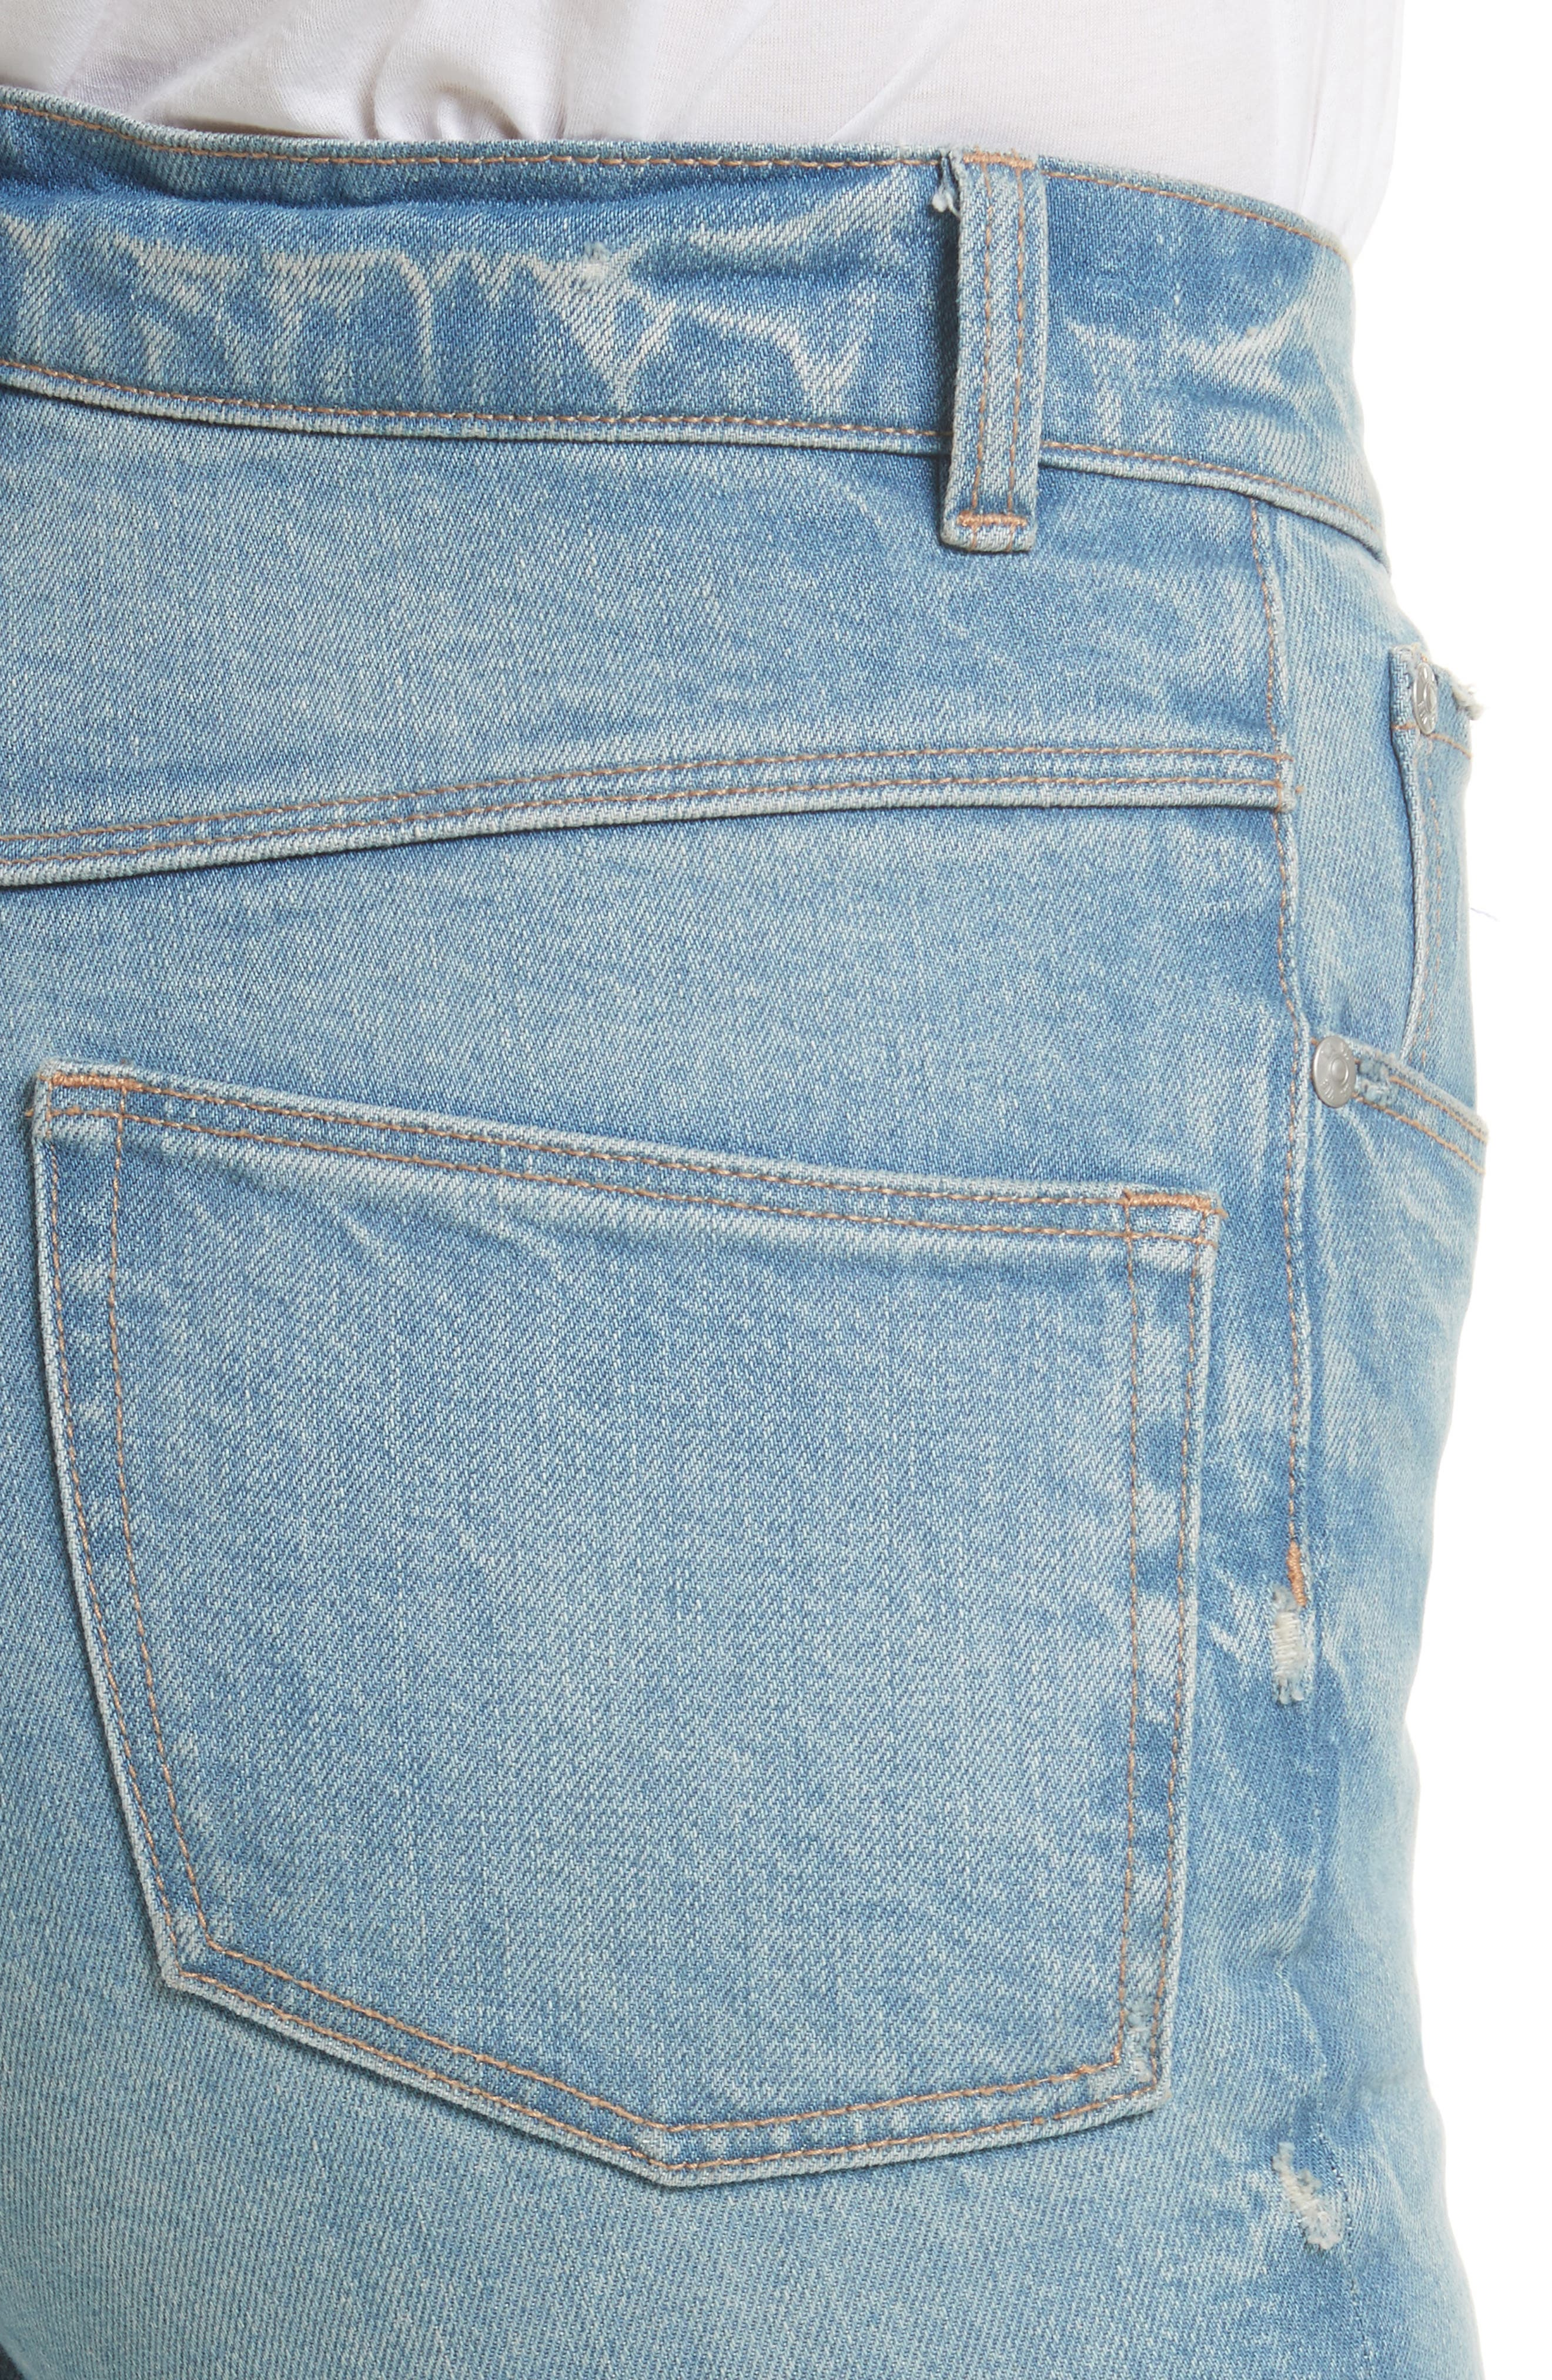 Alternate Image 4  - La Vie Rebecca Taylor Ines High Waist Ankle Jeans (Bluebell)